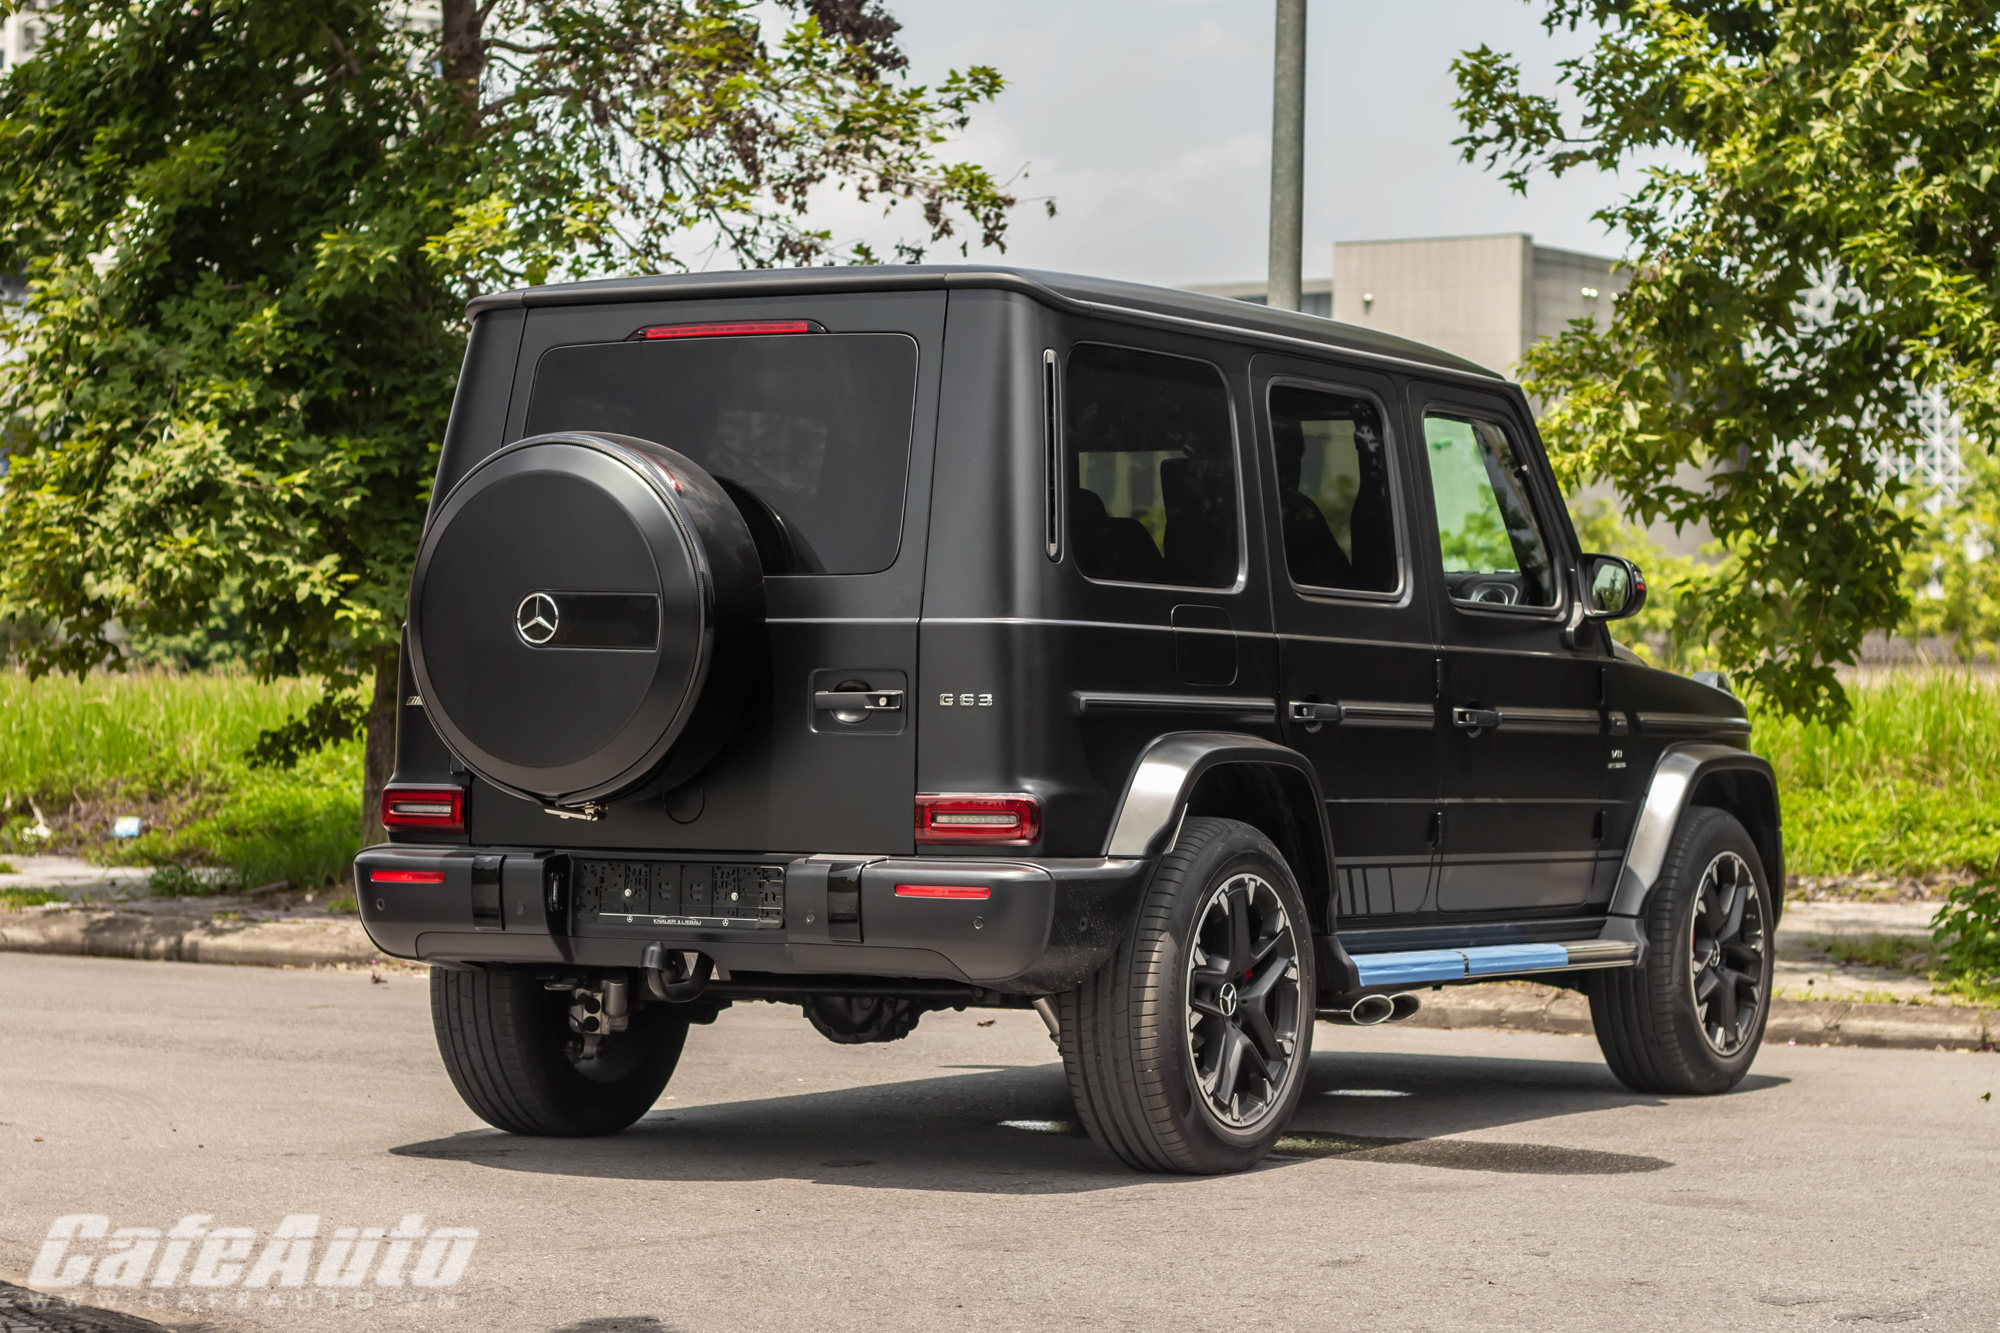 MercedesG63TrailPackage-cafeautovn-32